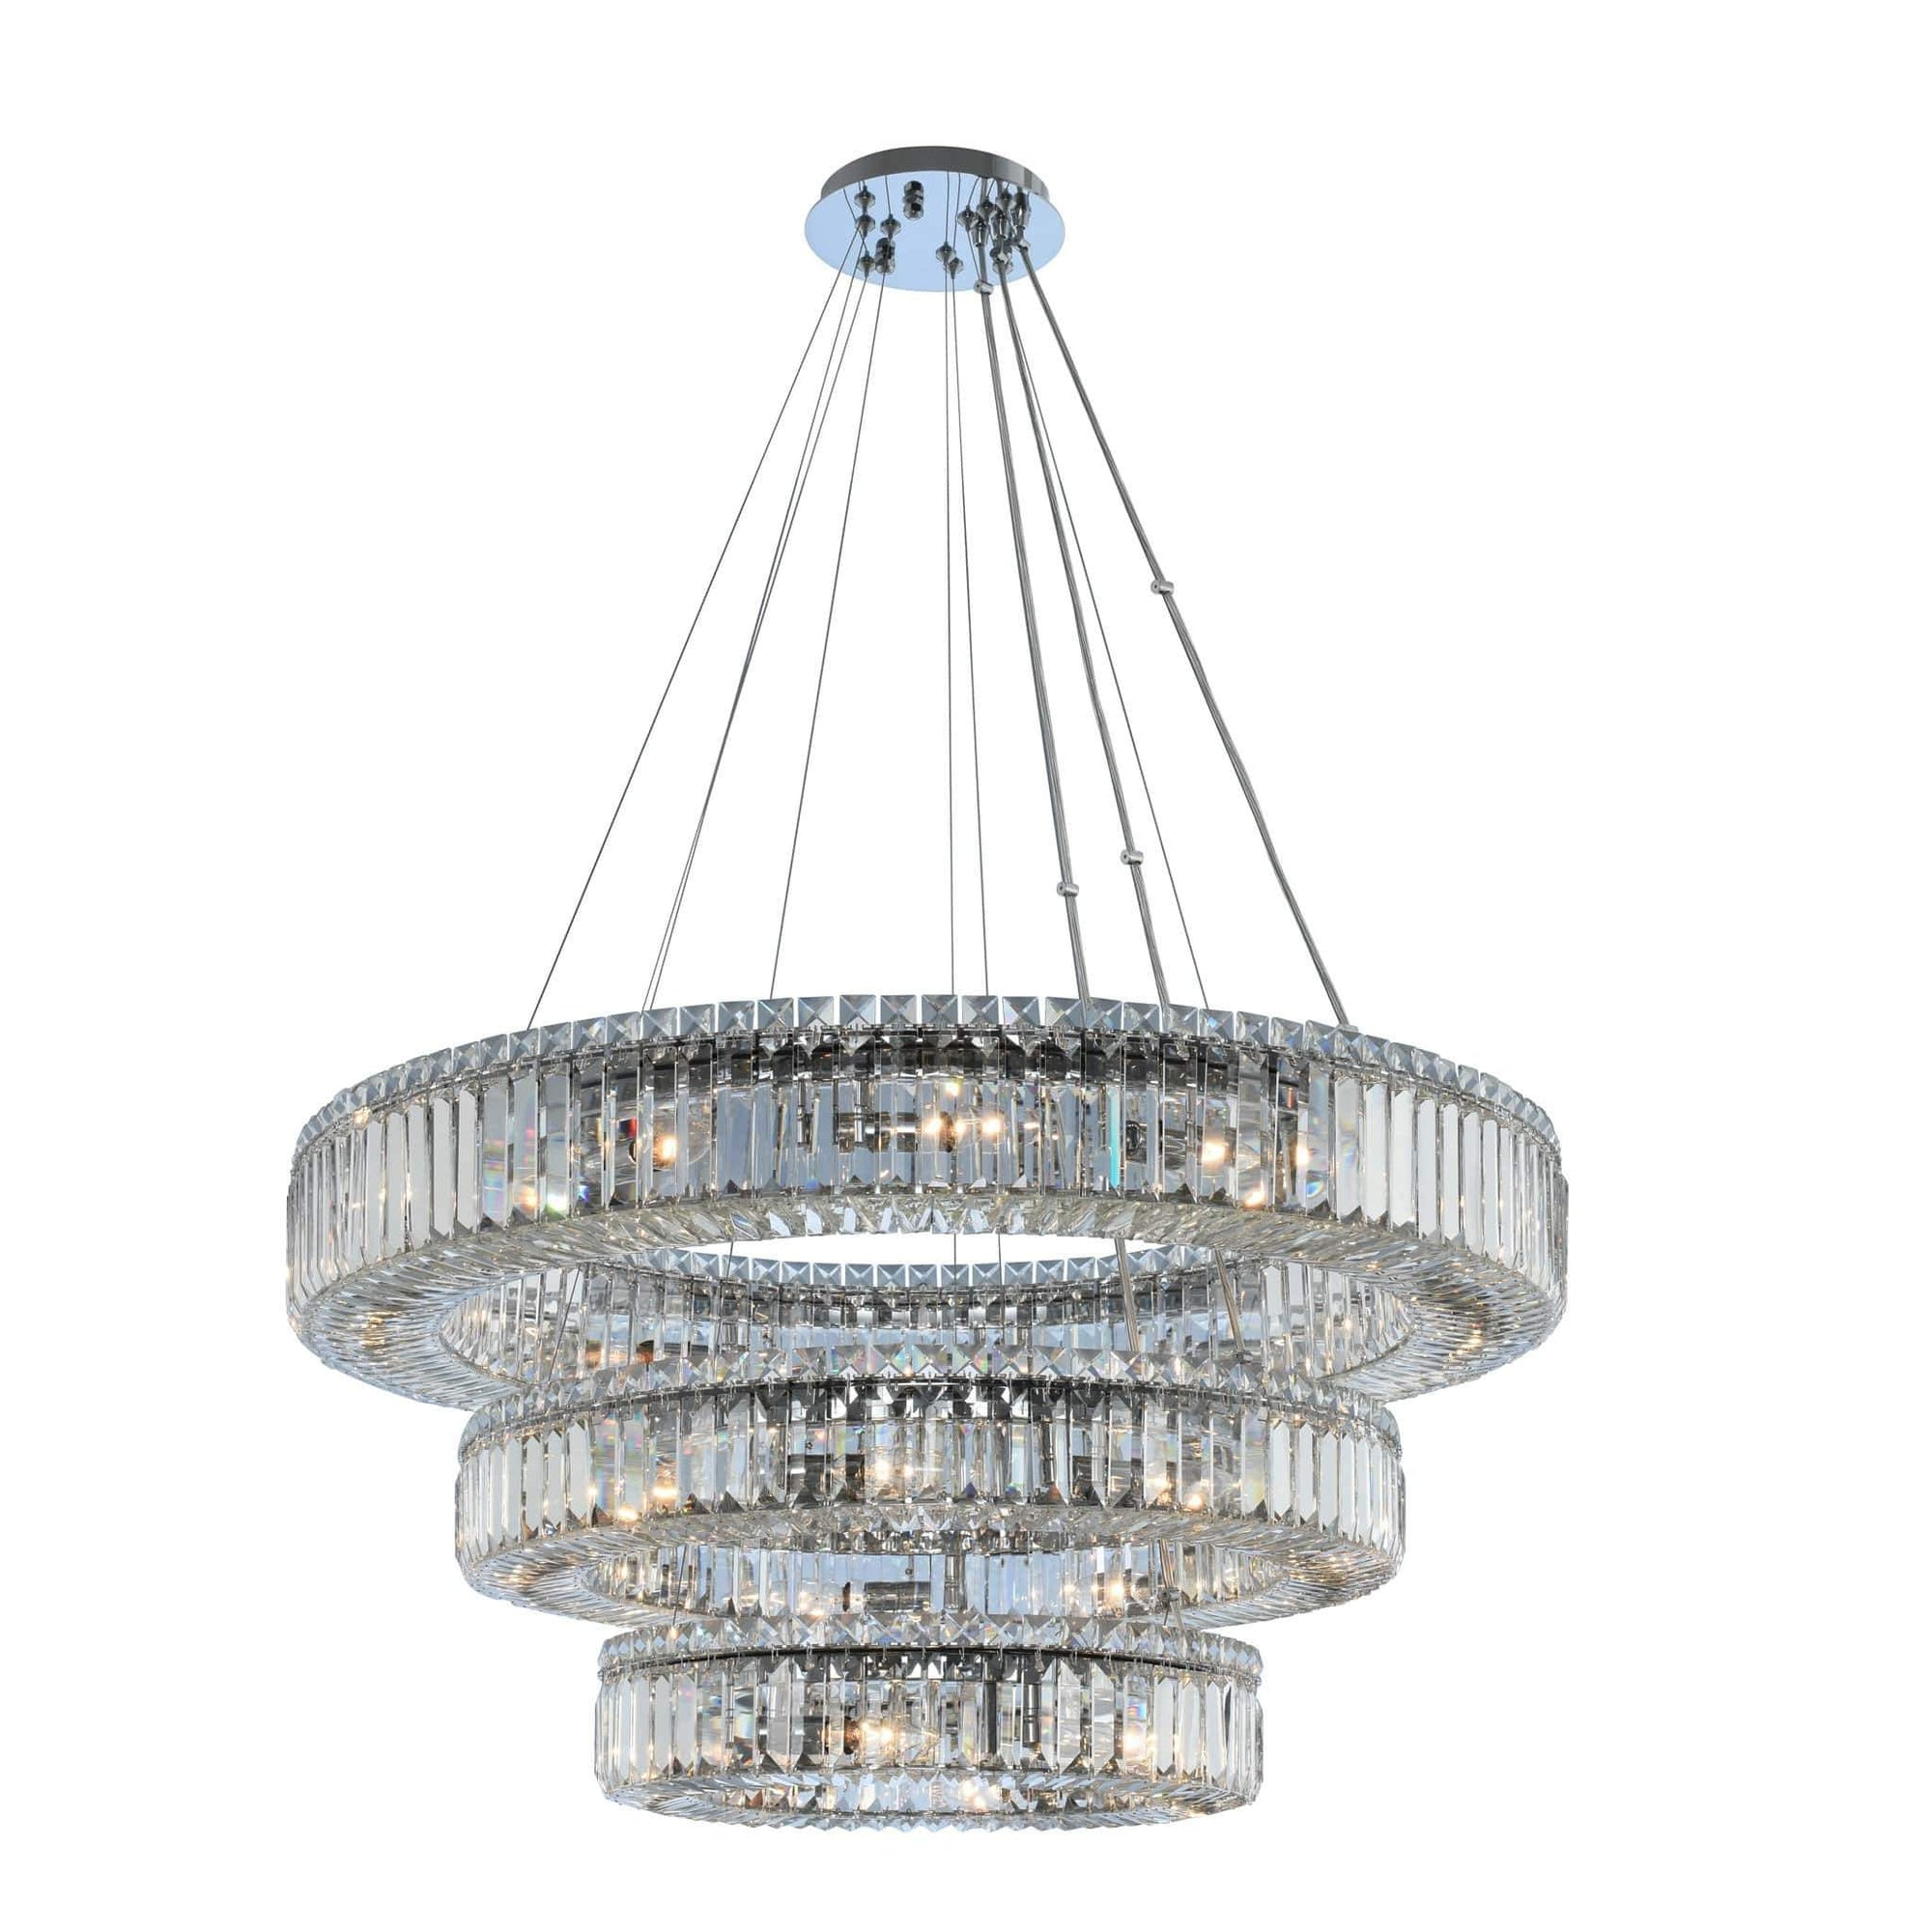 Allegri by Kalco Lighting Pendants Chrome / Firenze Rondelle (18 + 26 + 36) Inch 3 Tier Pendant From Allegri by Kalco Lighting 11771